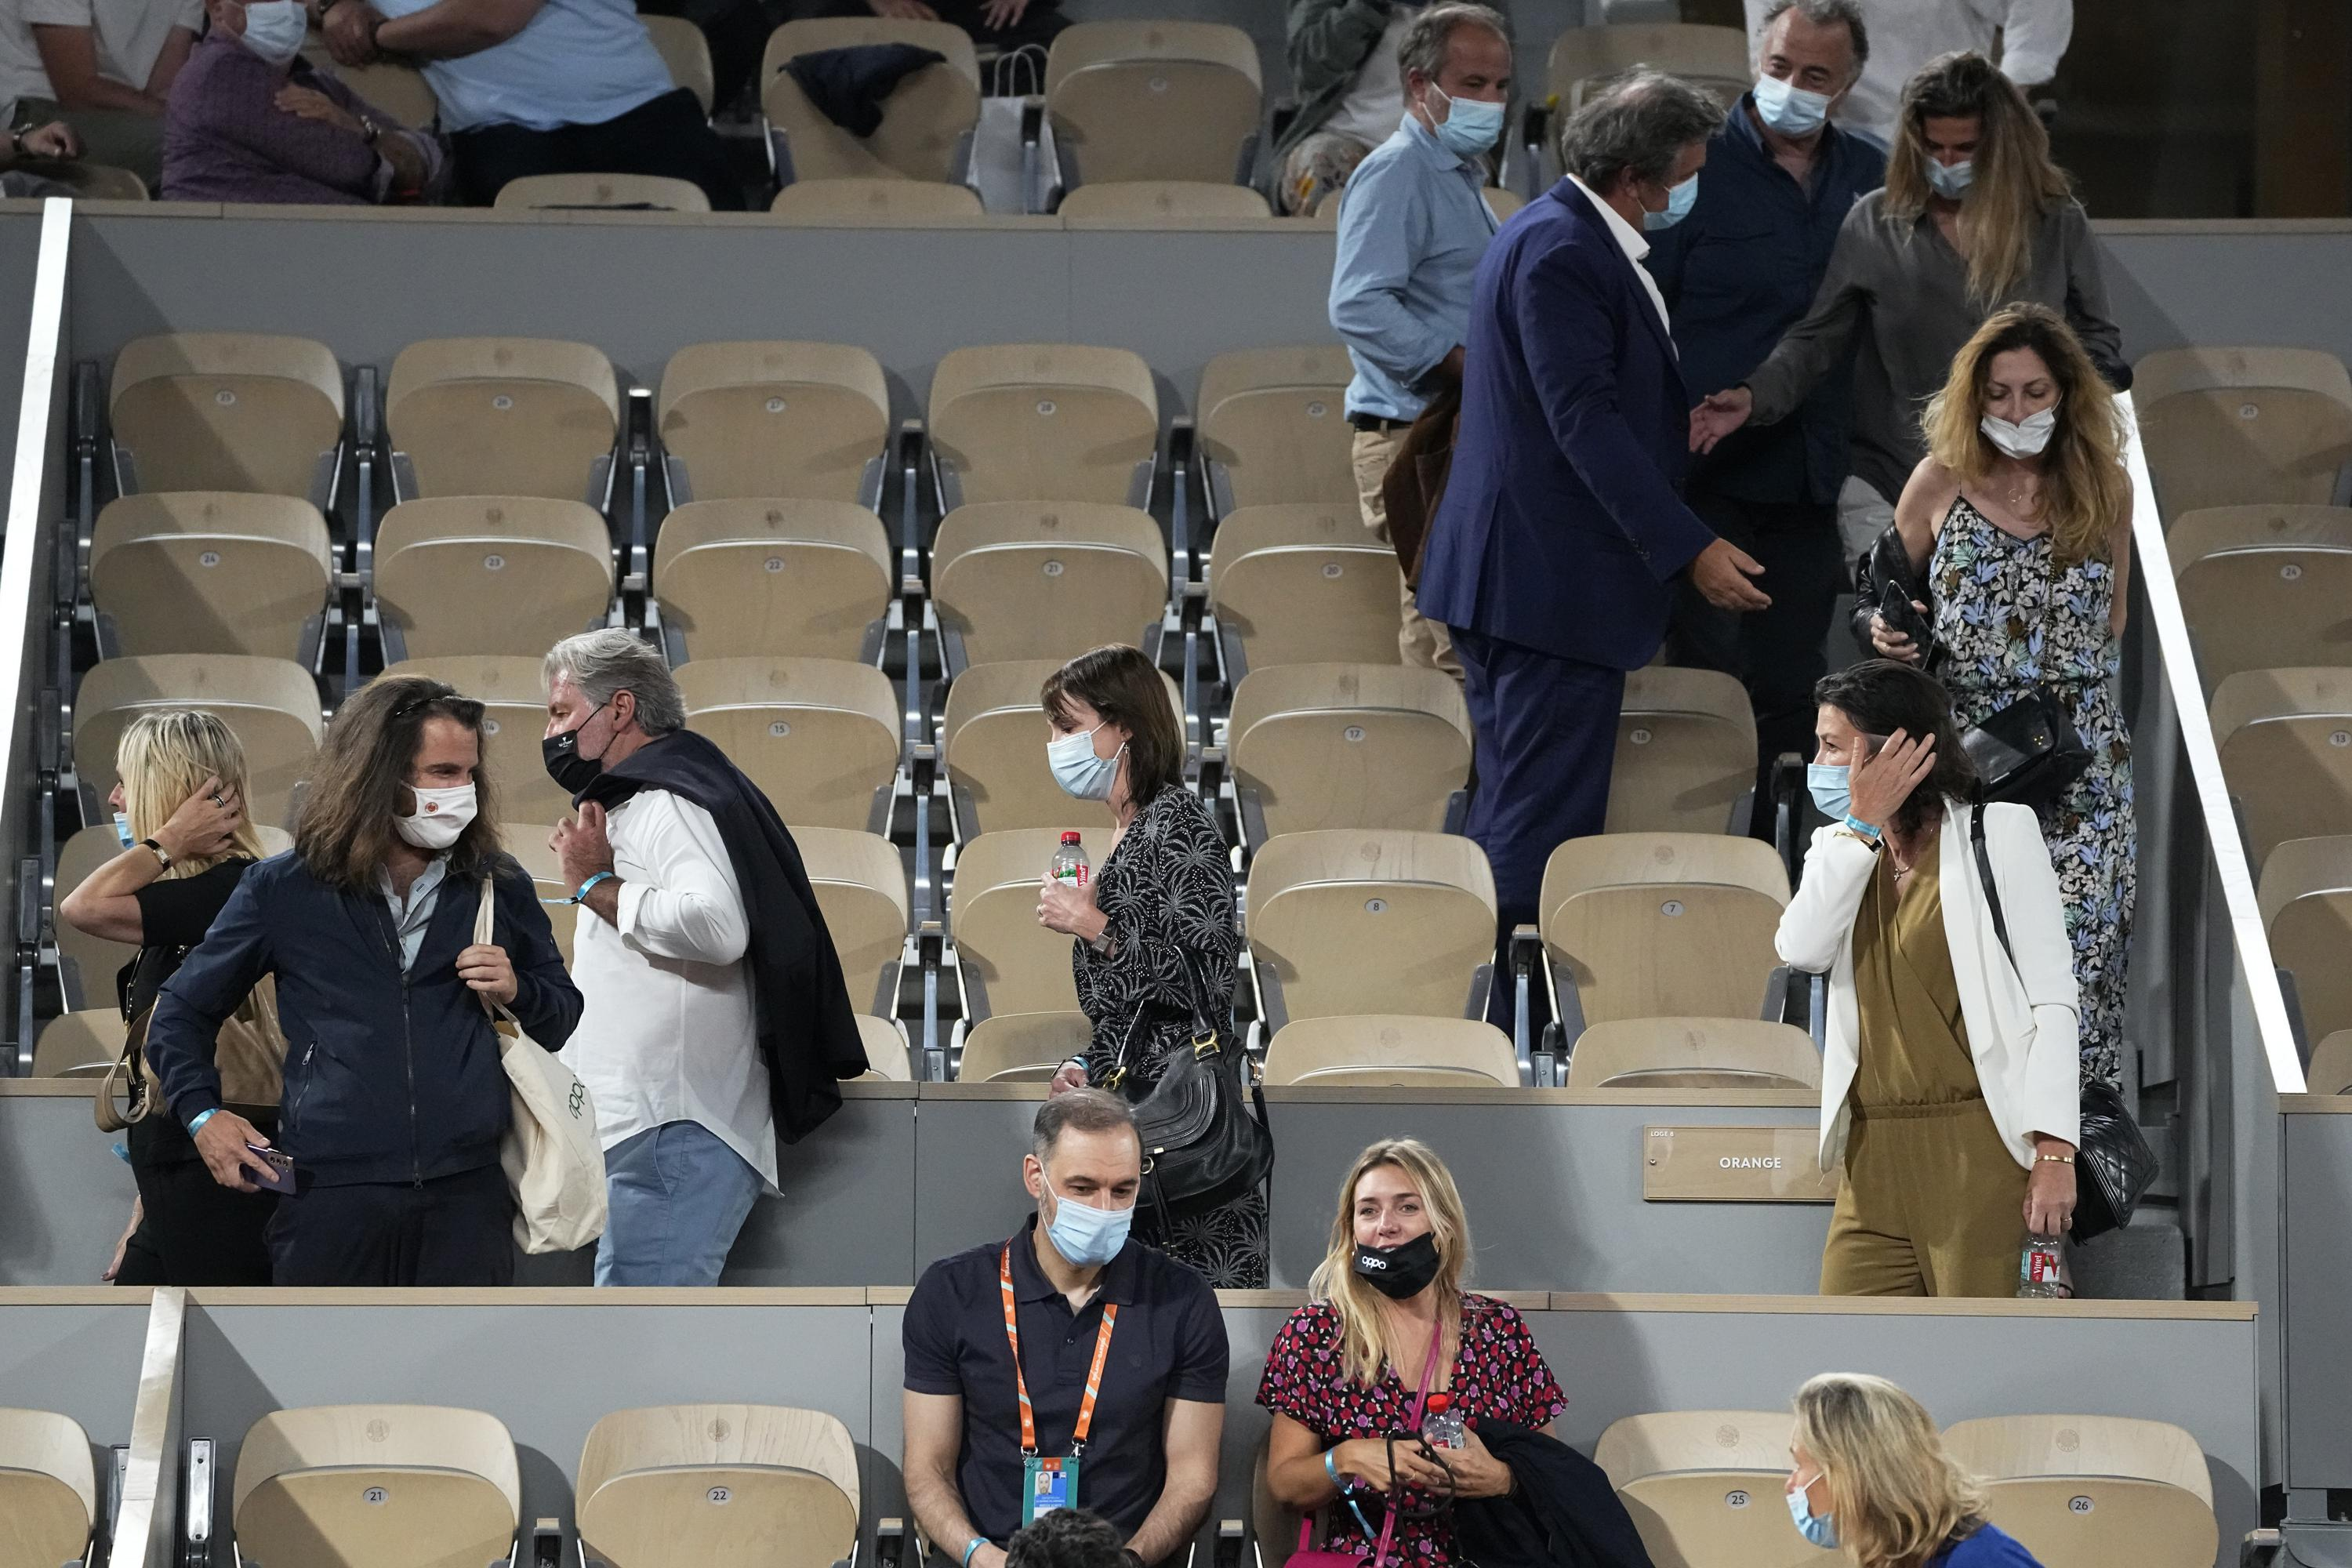 French Open fans angry as COVID curfew imposed during match